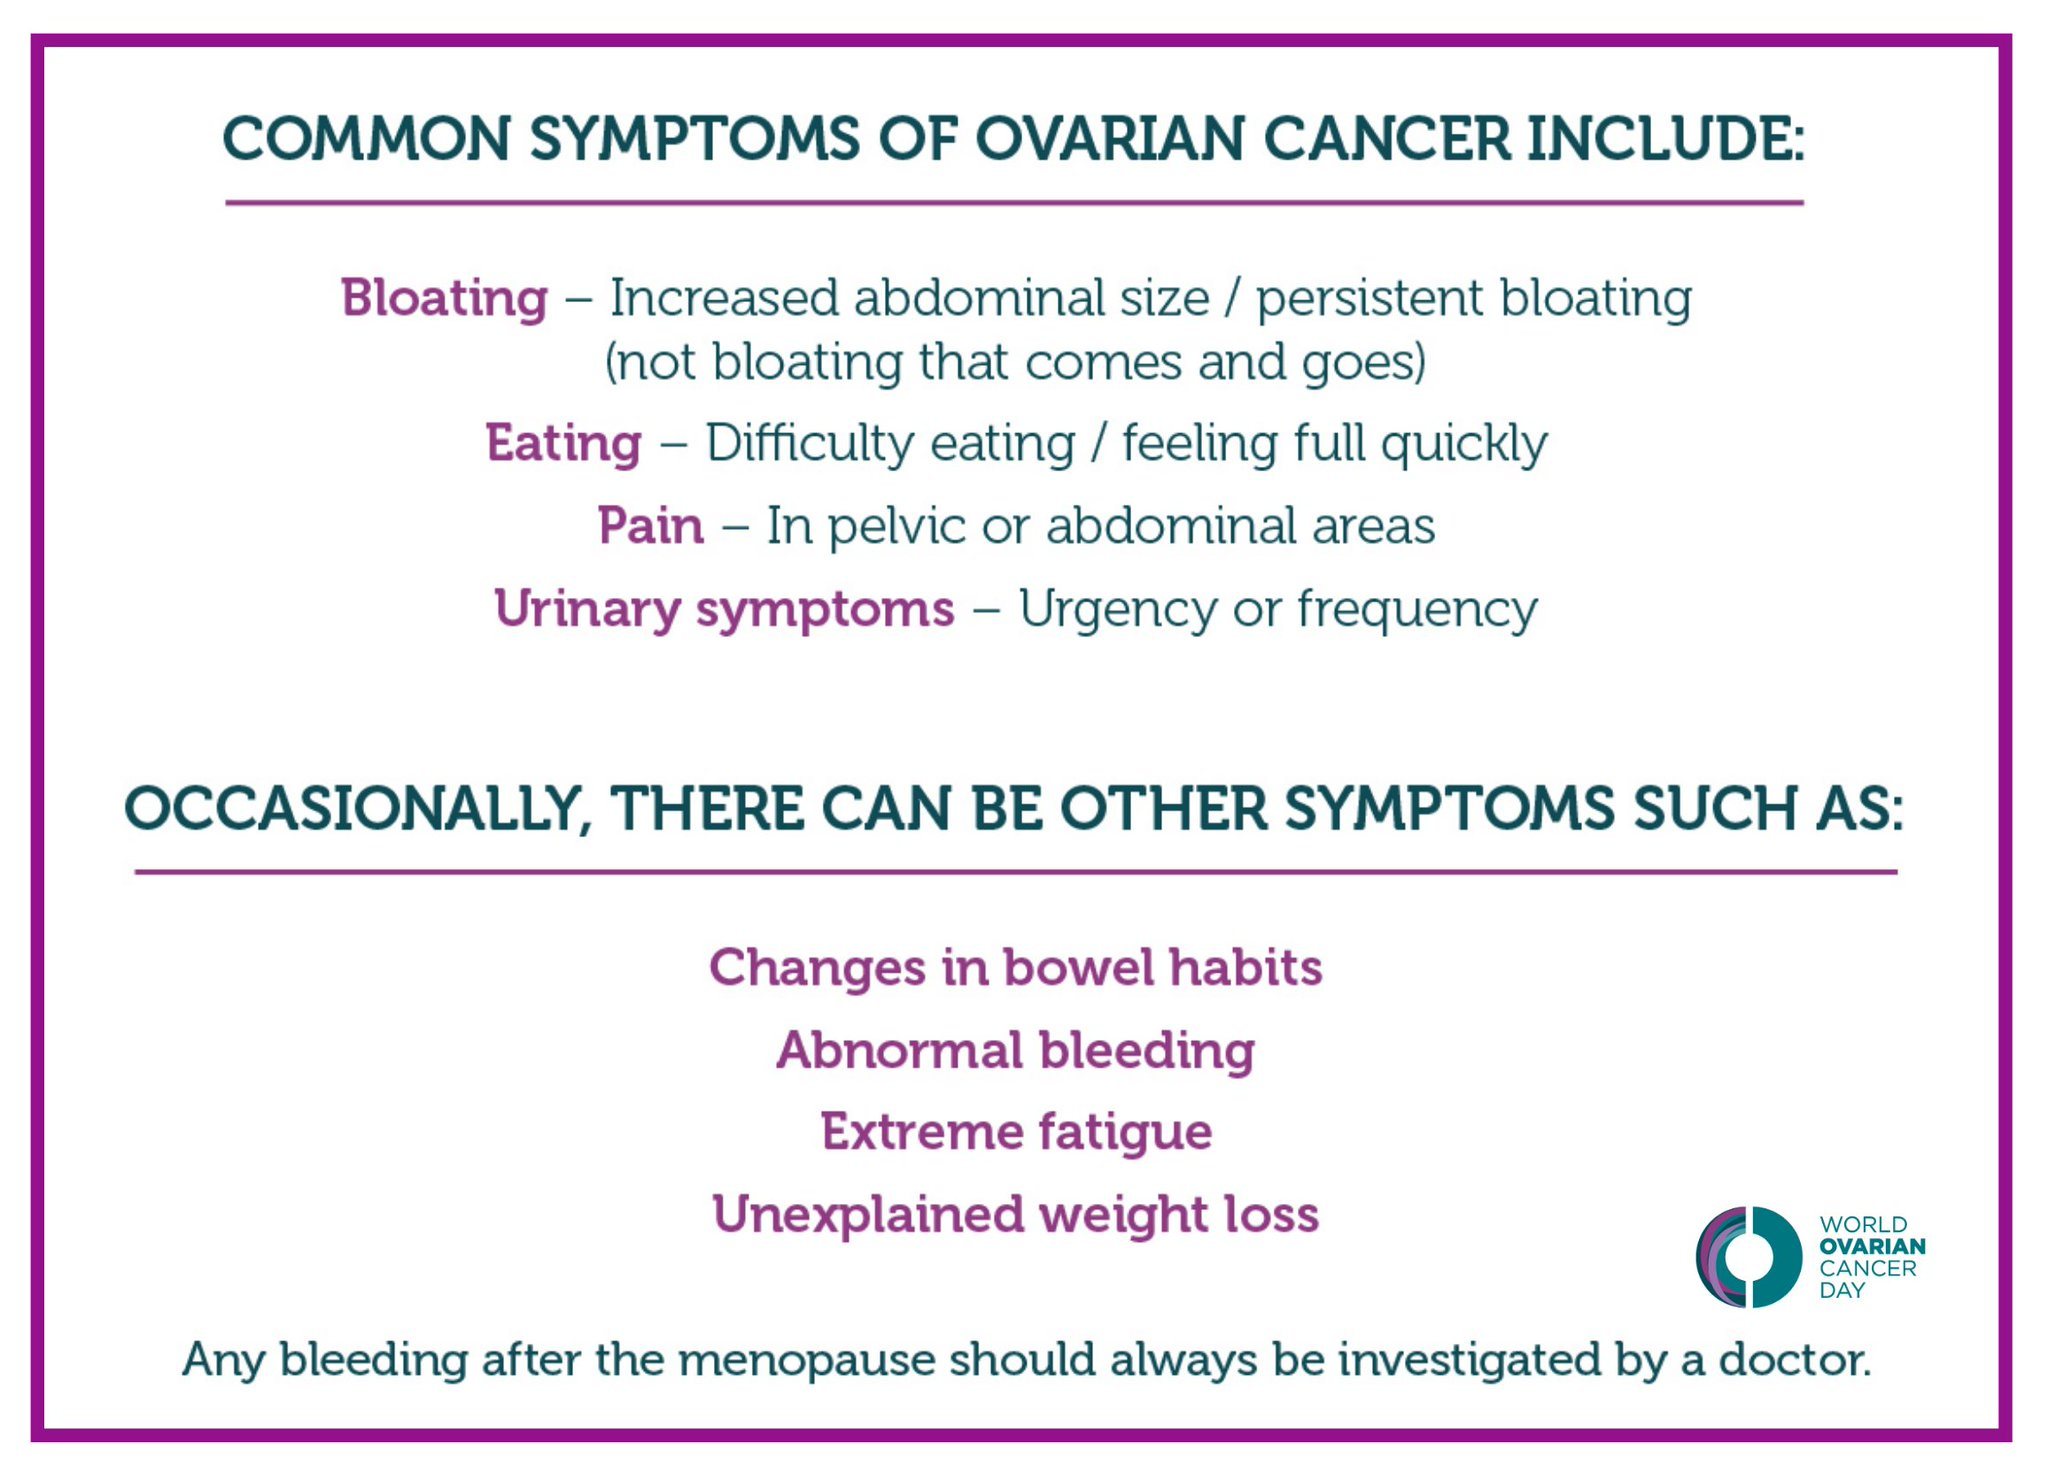 European Cancer Leagues On Twitter May 8th Is World Ovarian Cancer Day Today Be Encouraged To Learn More About One Of The Most Common Types Of Cancer In Women And Raise Awareness